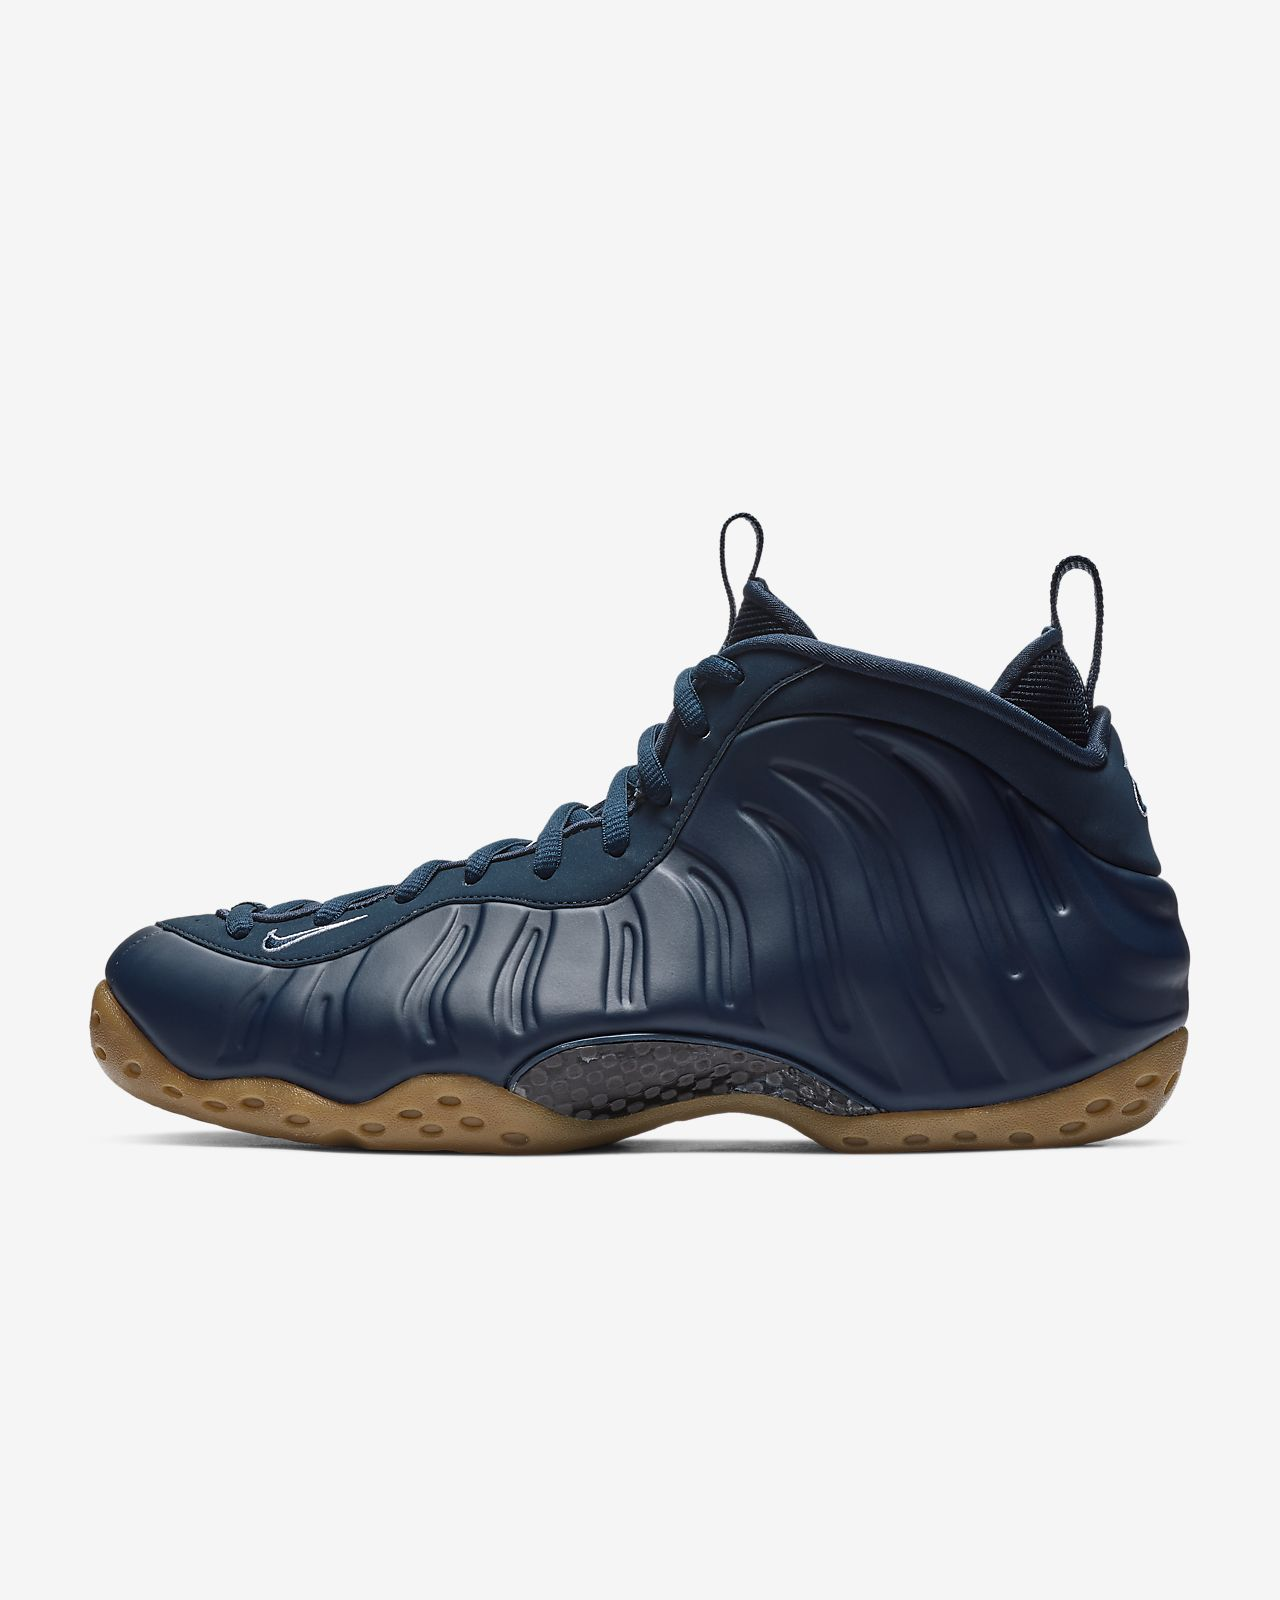 Nike Air Foamposite One Mens Shoe Nikecom